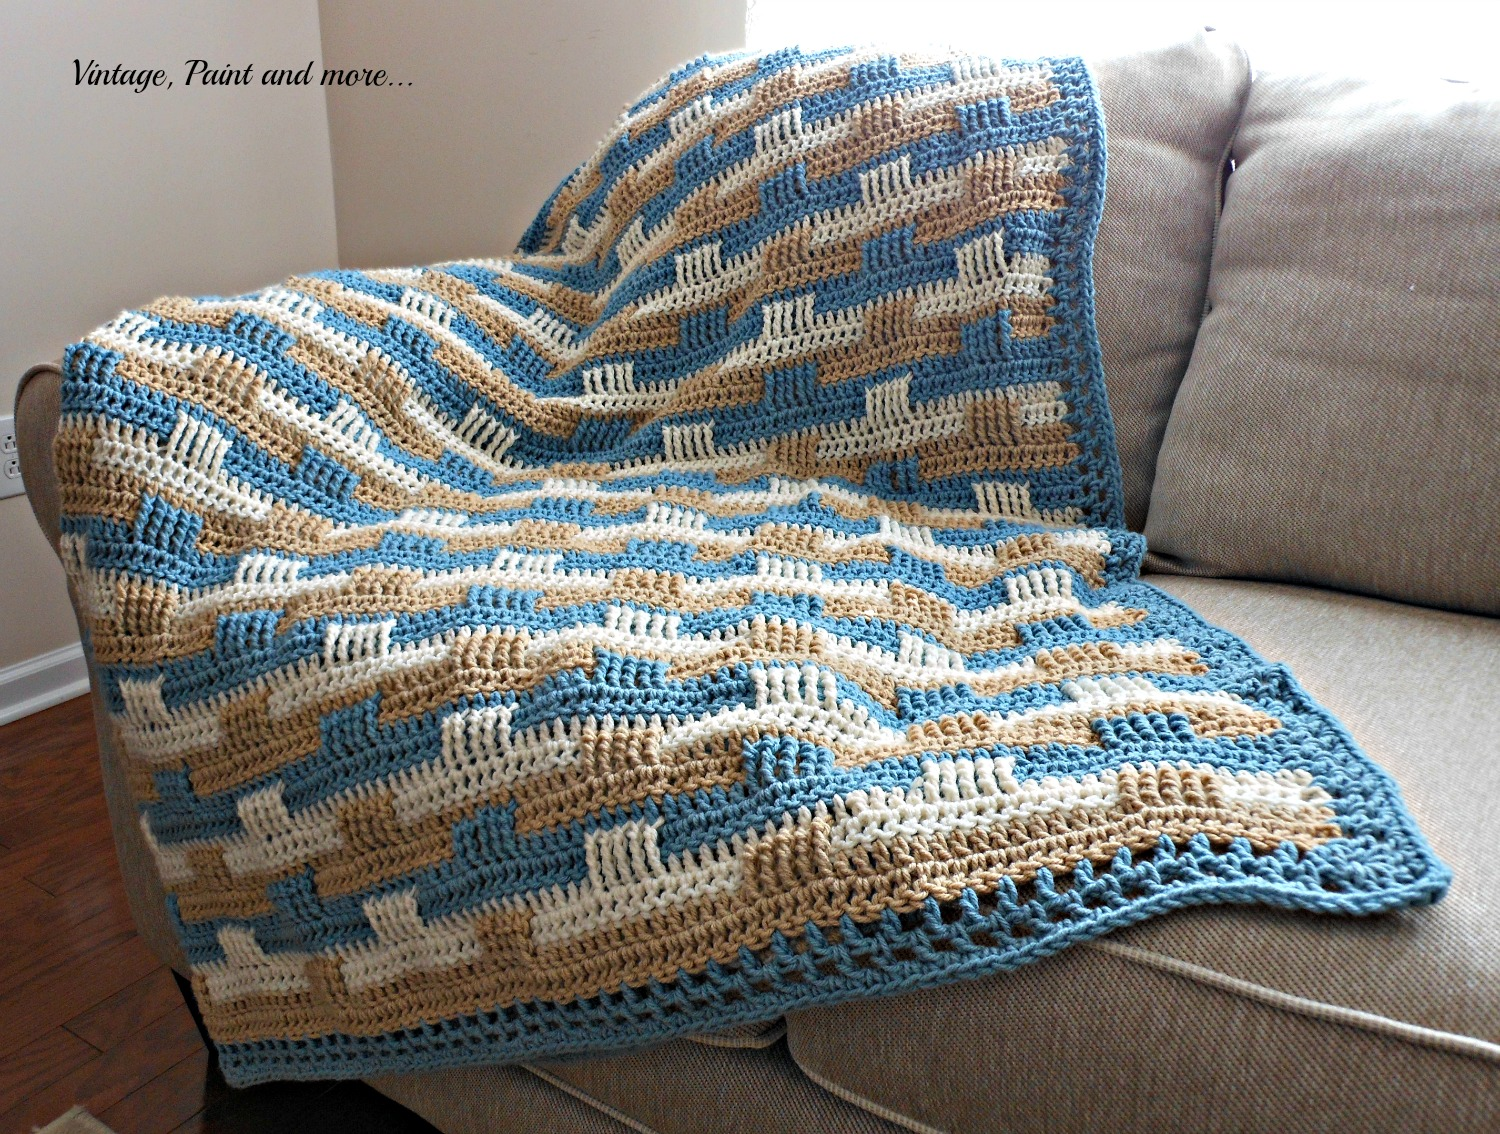 Crochet Afghan Patterns With 2 Colors : Crochet Afghan and Stenciled Pillow Vintage, Paint and ...